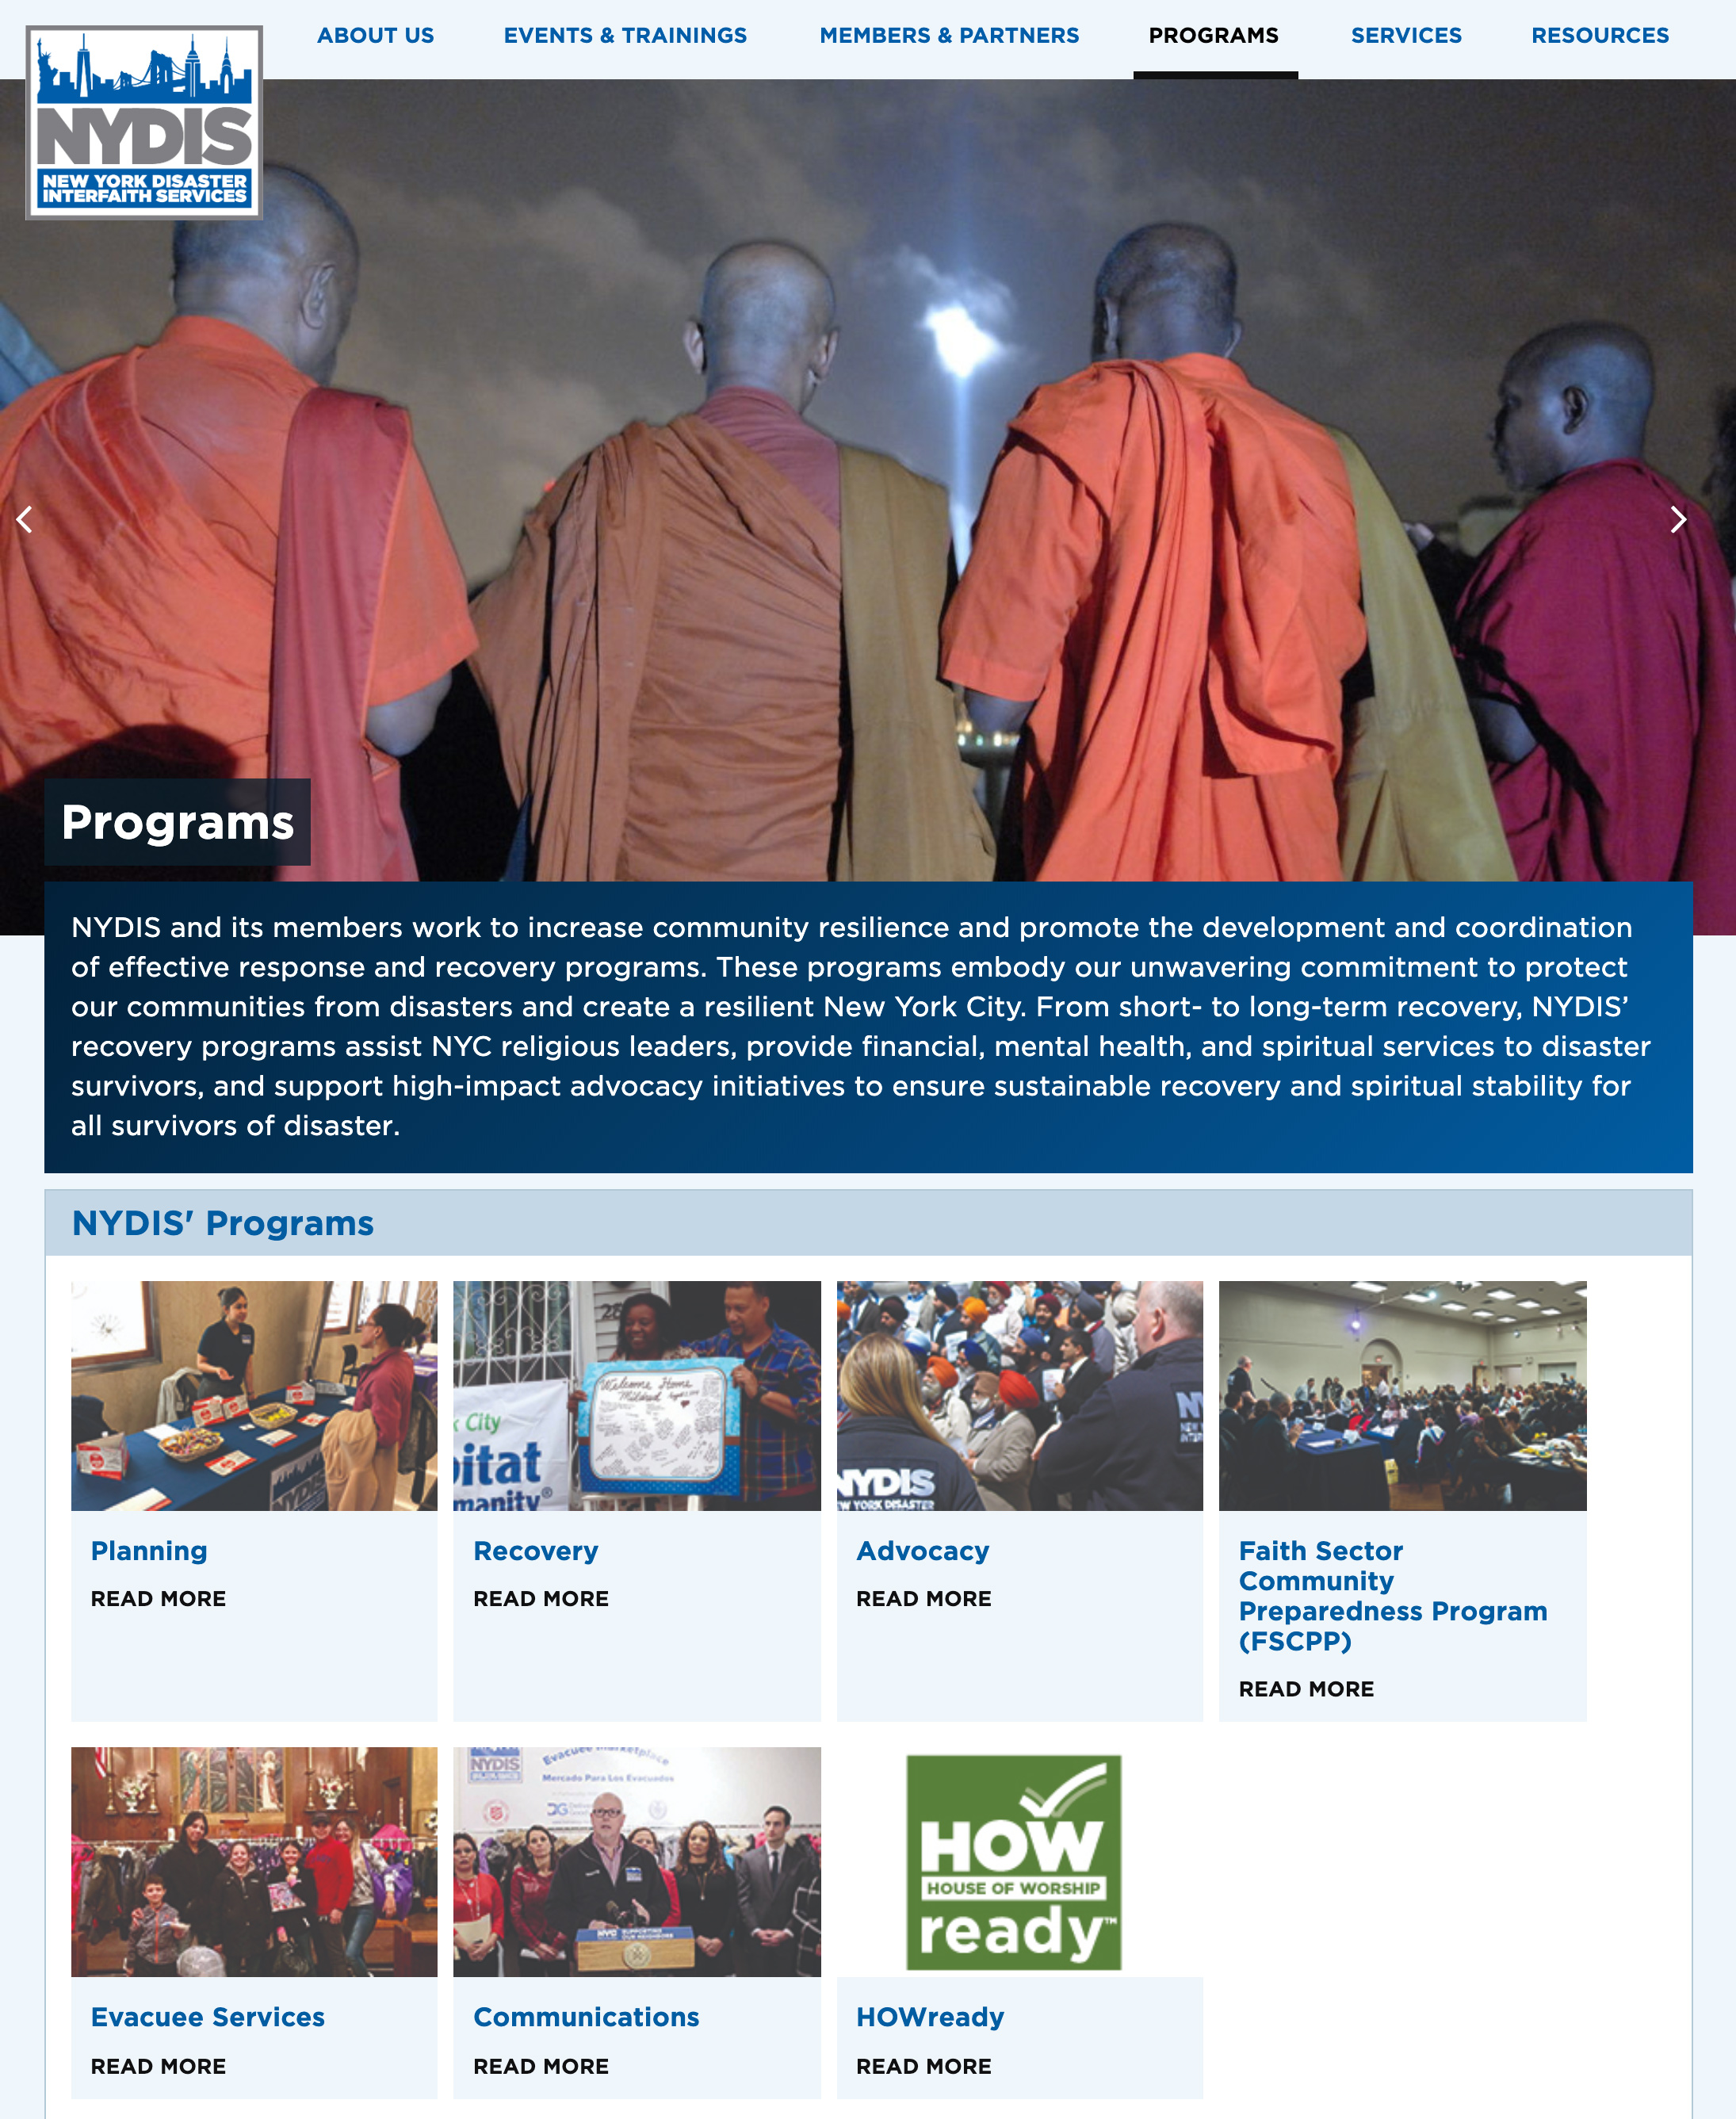 NYDIS: New York Disaster Interfaith Services: Programs Overview